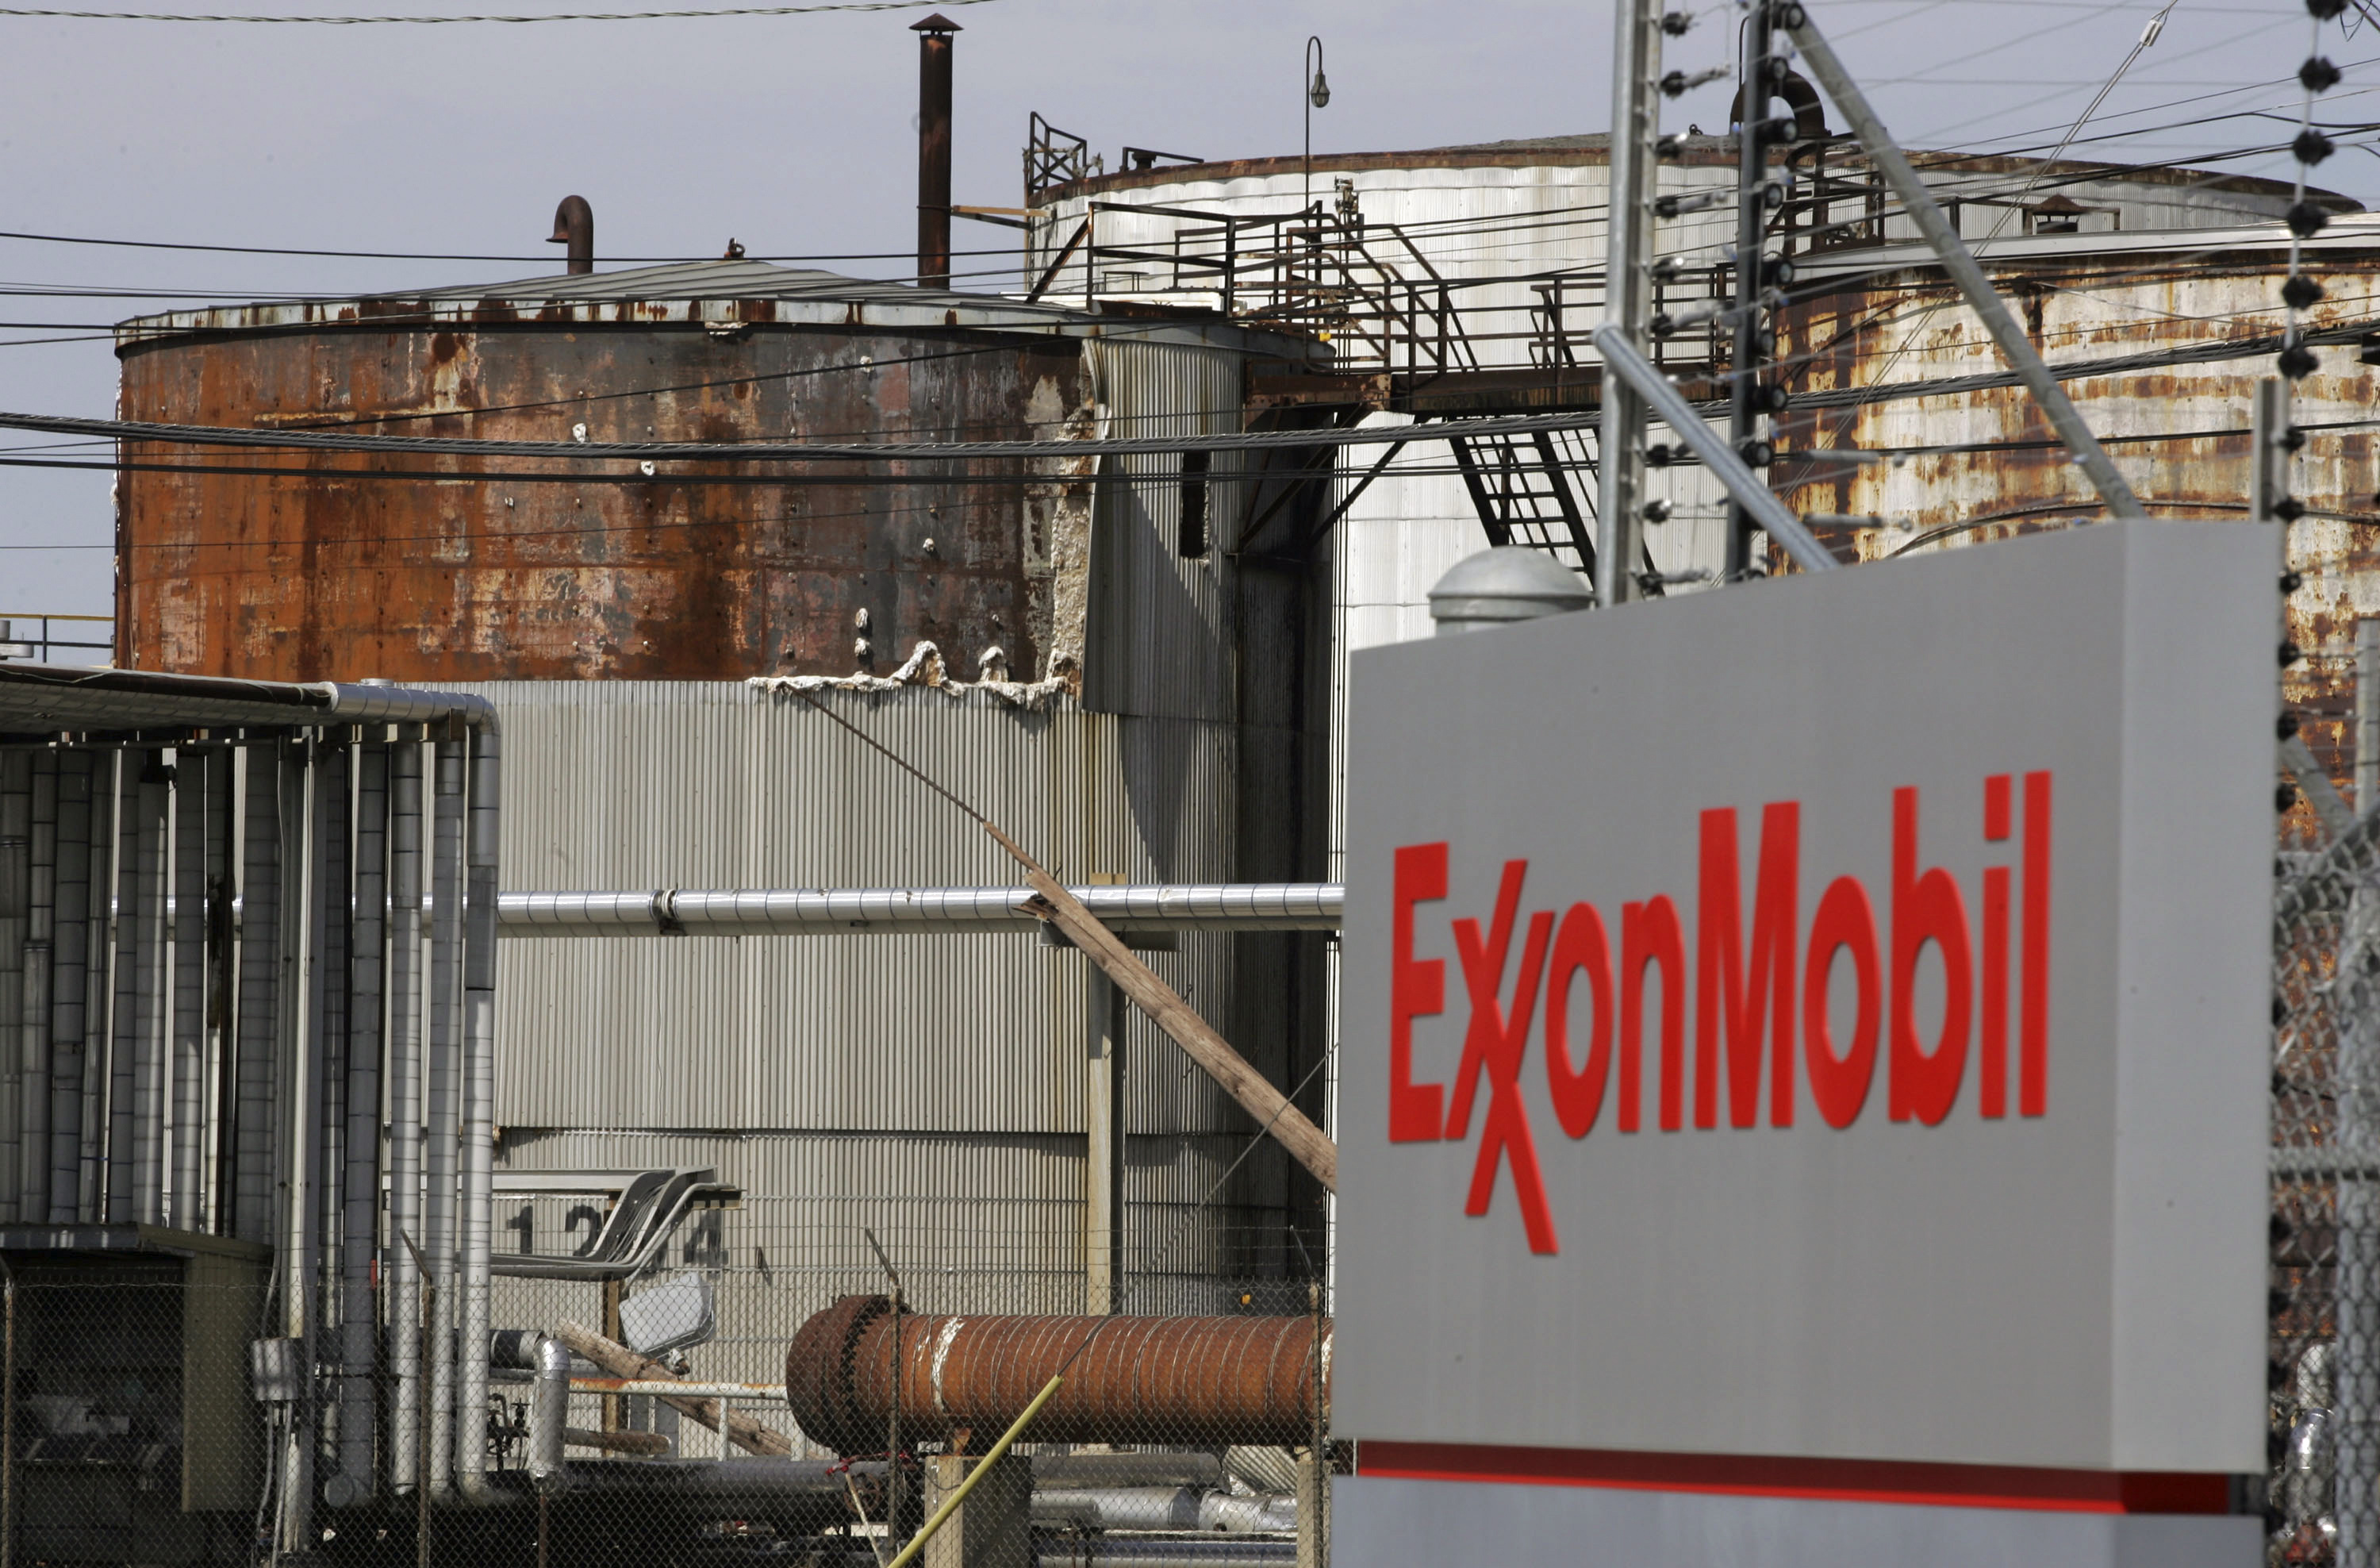 Image: File photo of the Exxon Mobil refinery in Baytown, Texas